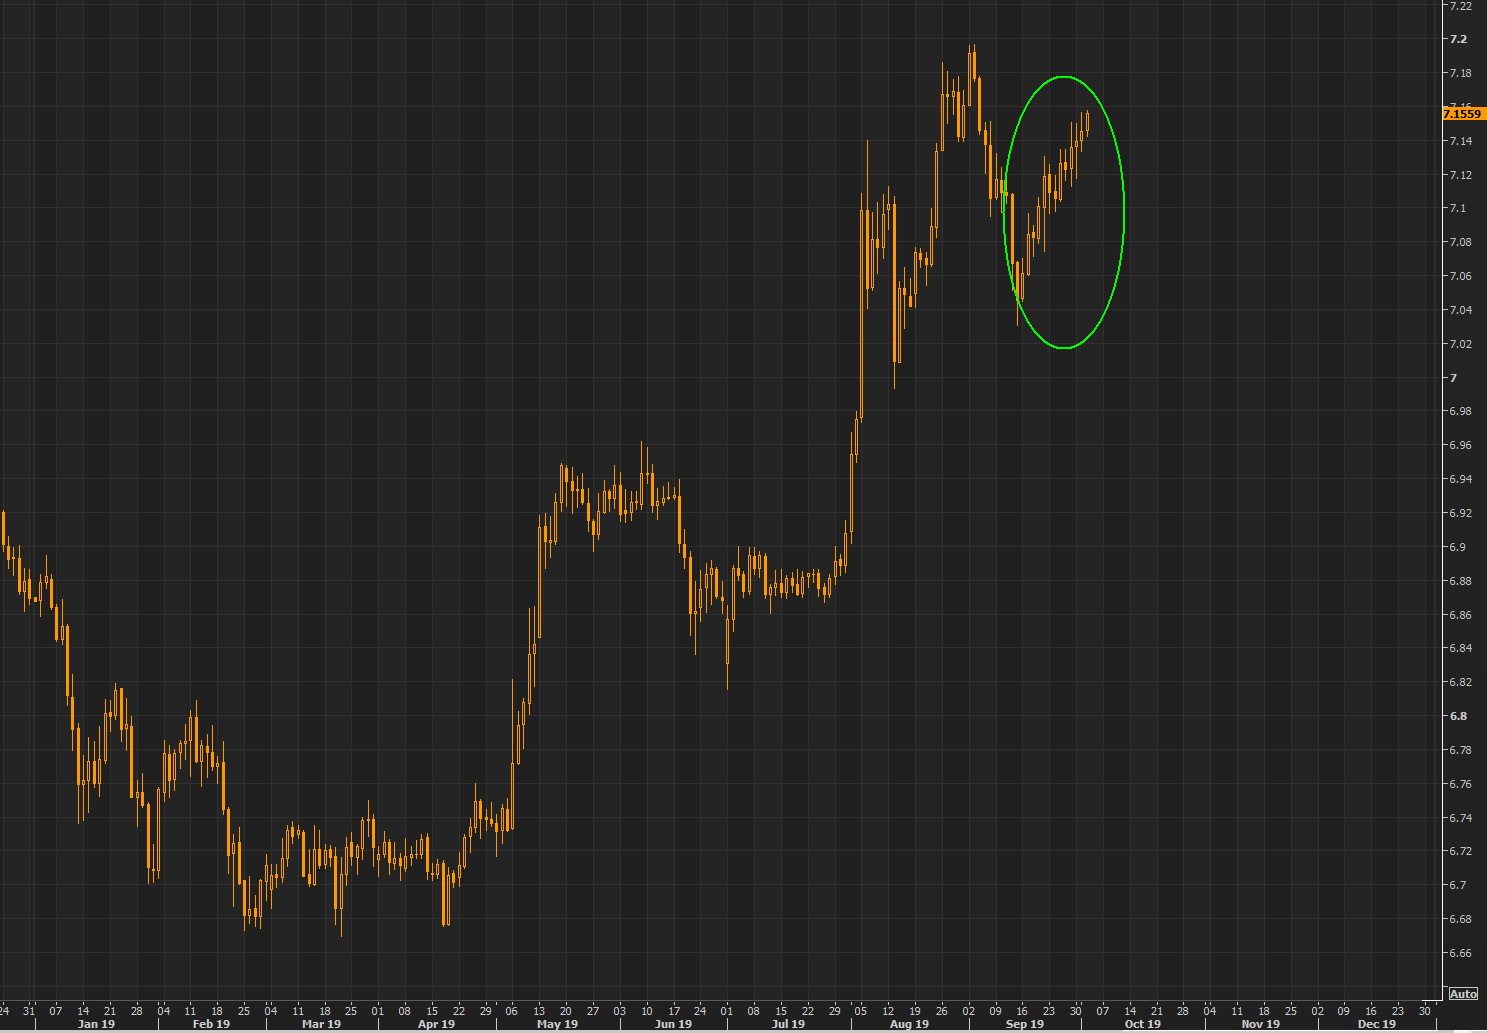 Not much noise, but the Yuan continues moving one way only